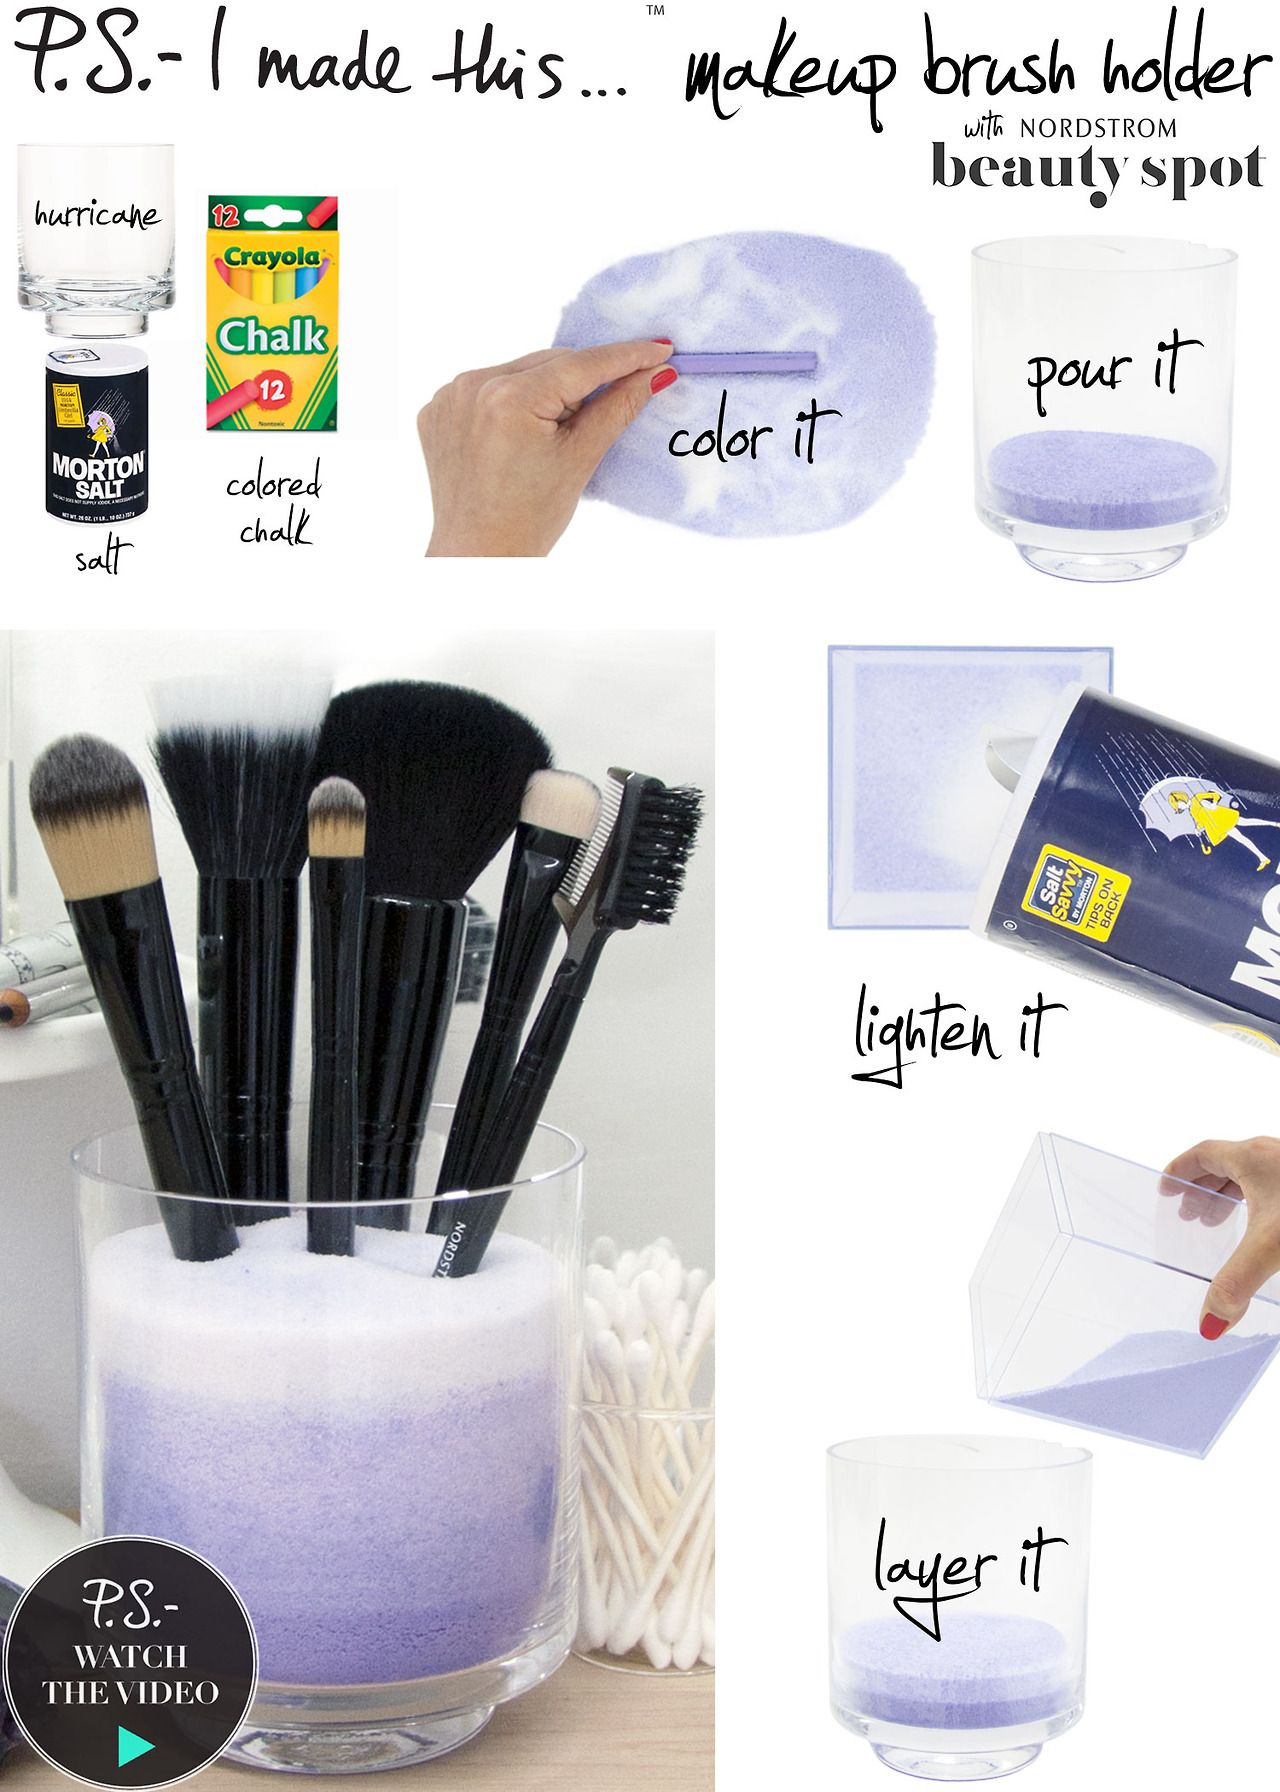 Makeup Brush Holder With @Nordstrombeauty Spot @